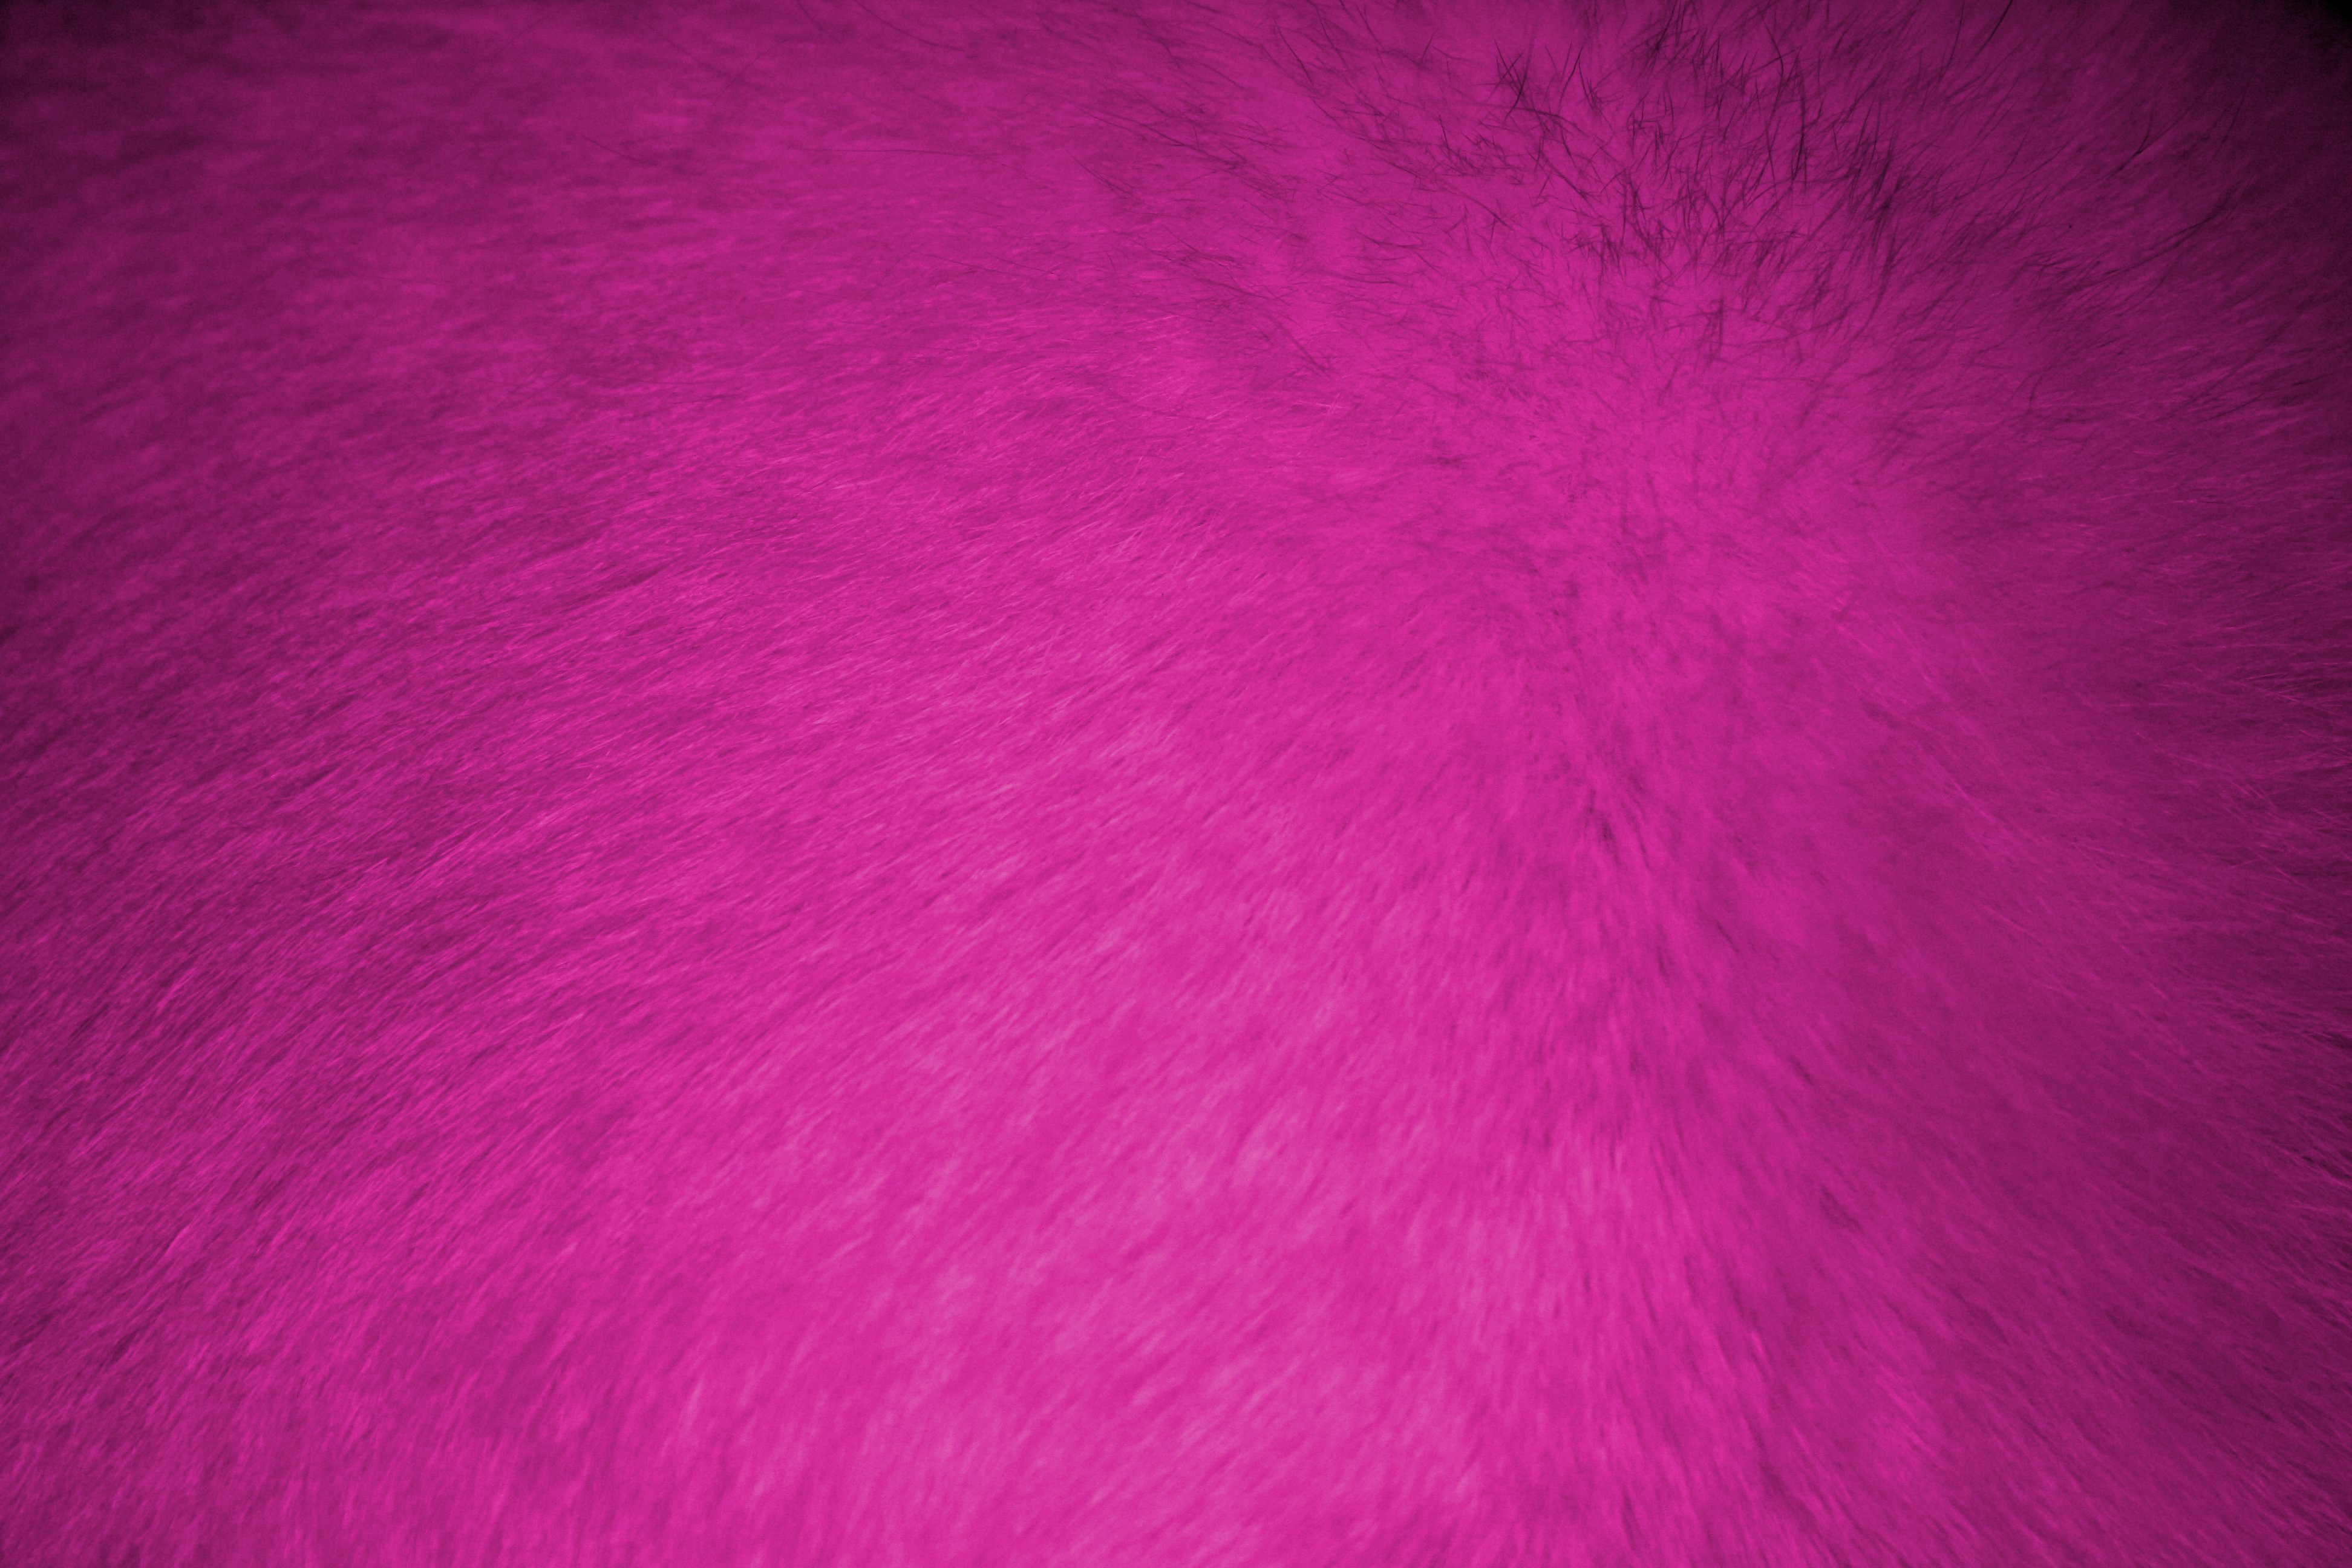 Hot pink fur texture free high resolution photo dimensions 3888 2592 click here to download full resolution image